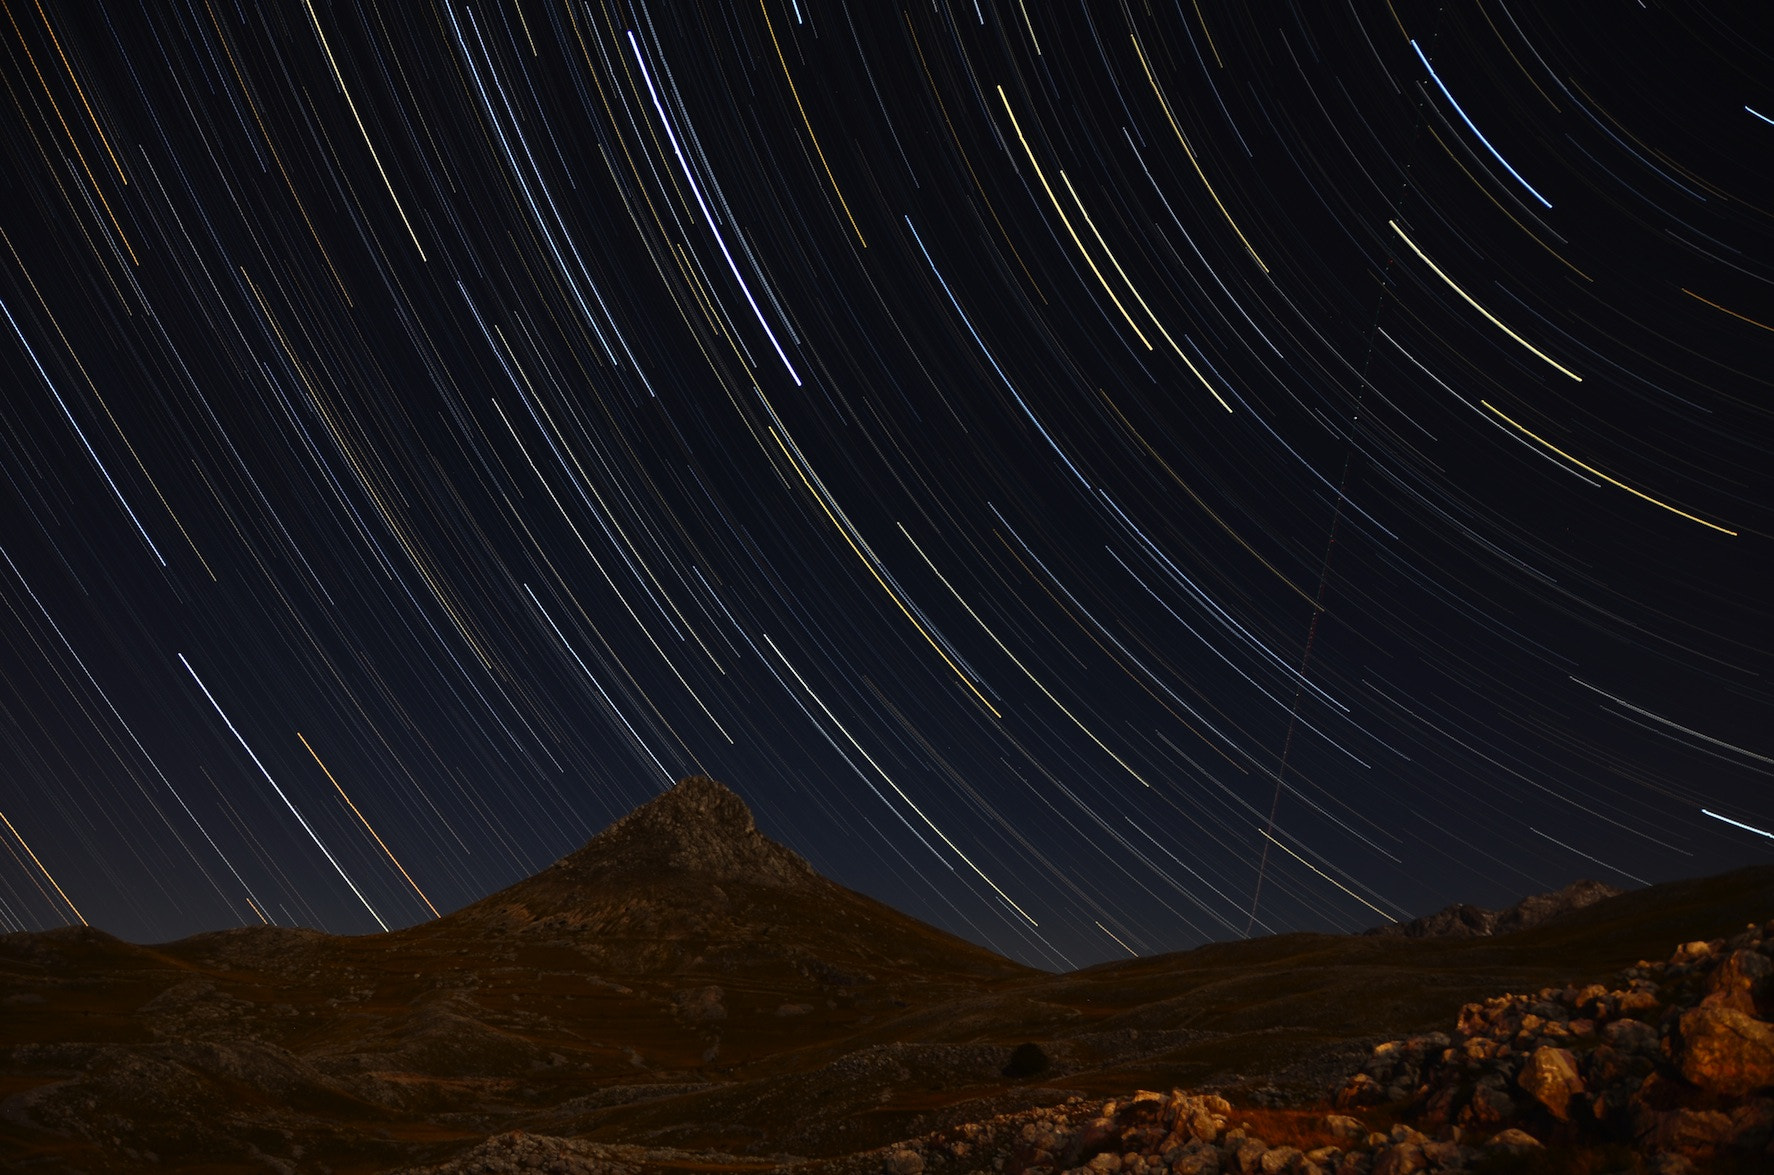 Photograph Startrails sul Monte Bolza by Cristian Martinelli on 500px